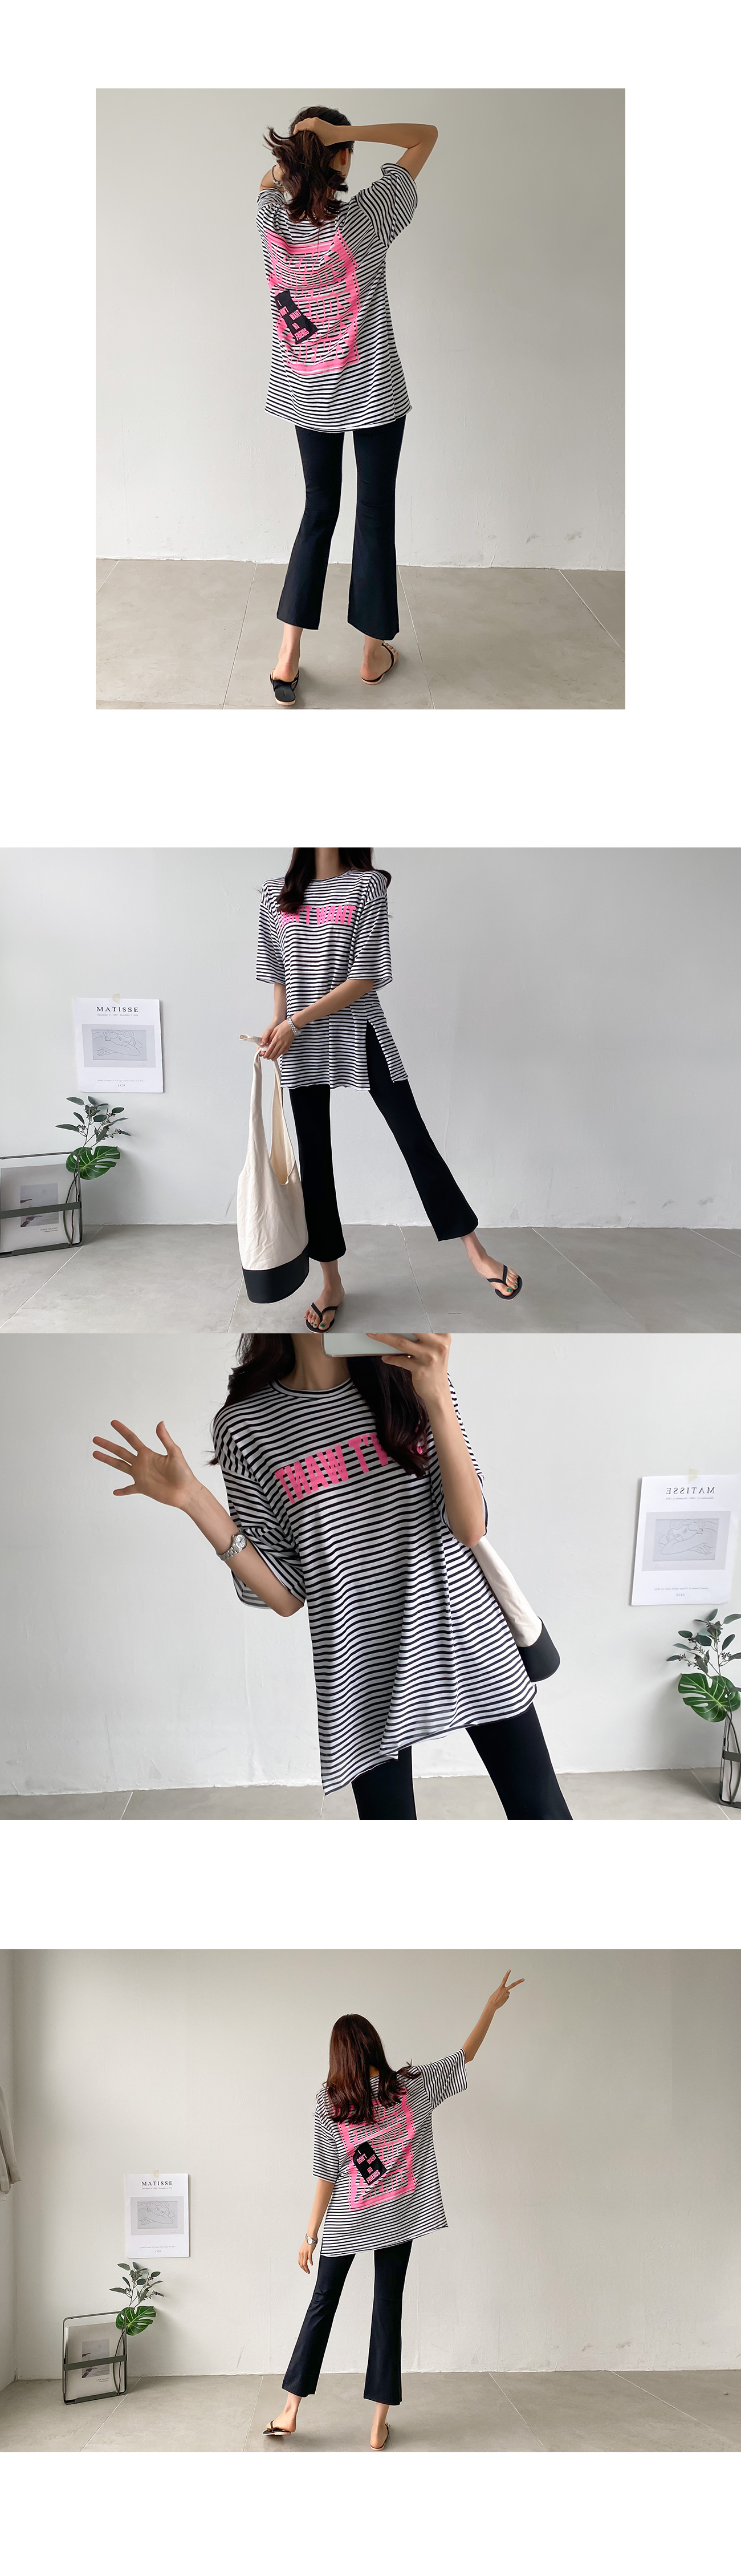 Loose Fit Dont Printing T-Shirt #108293